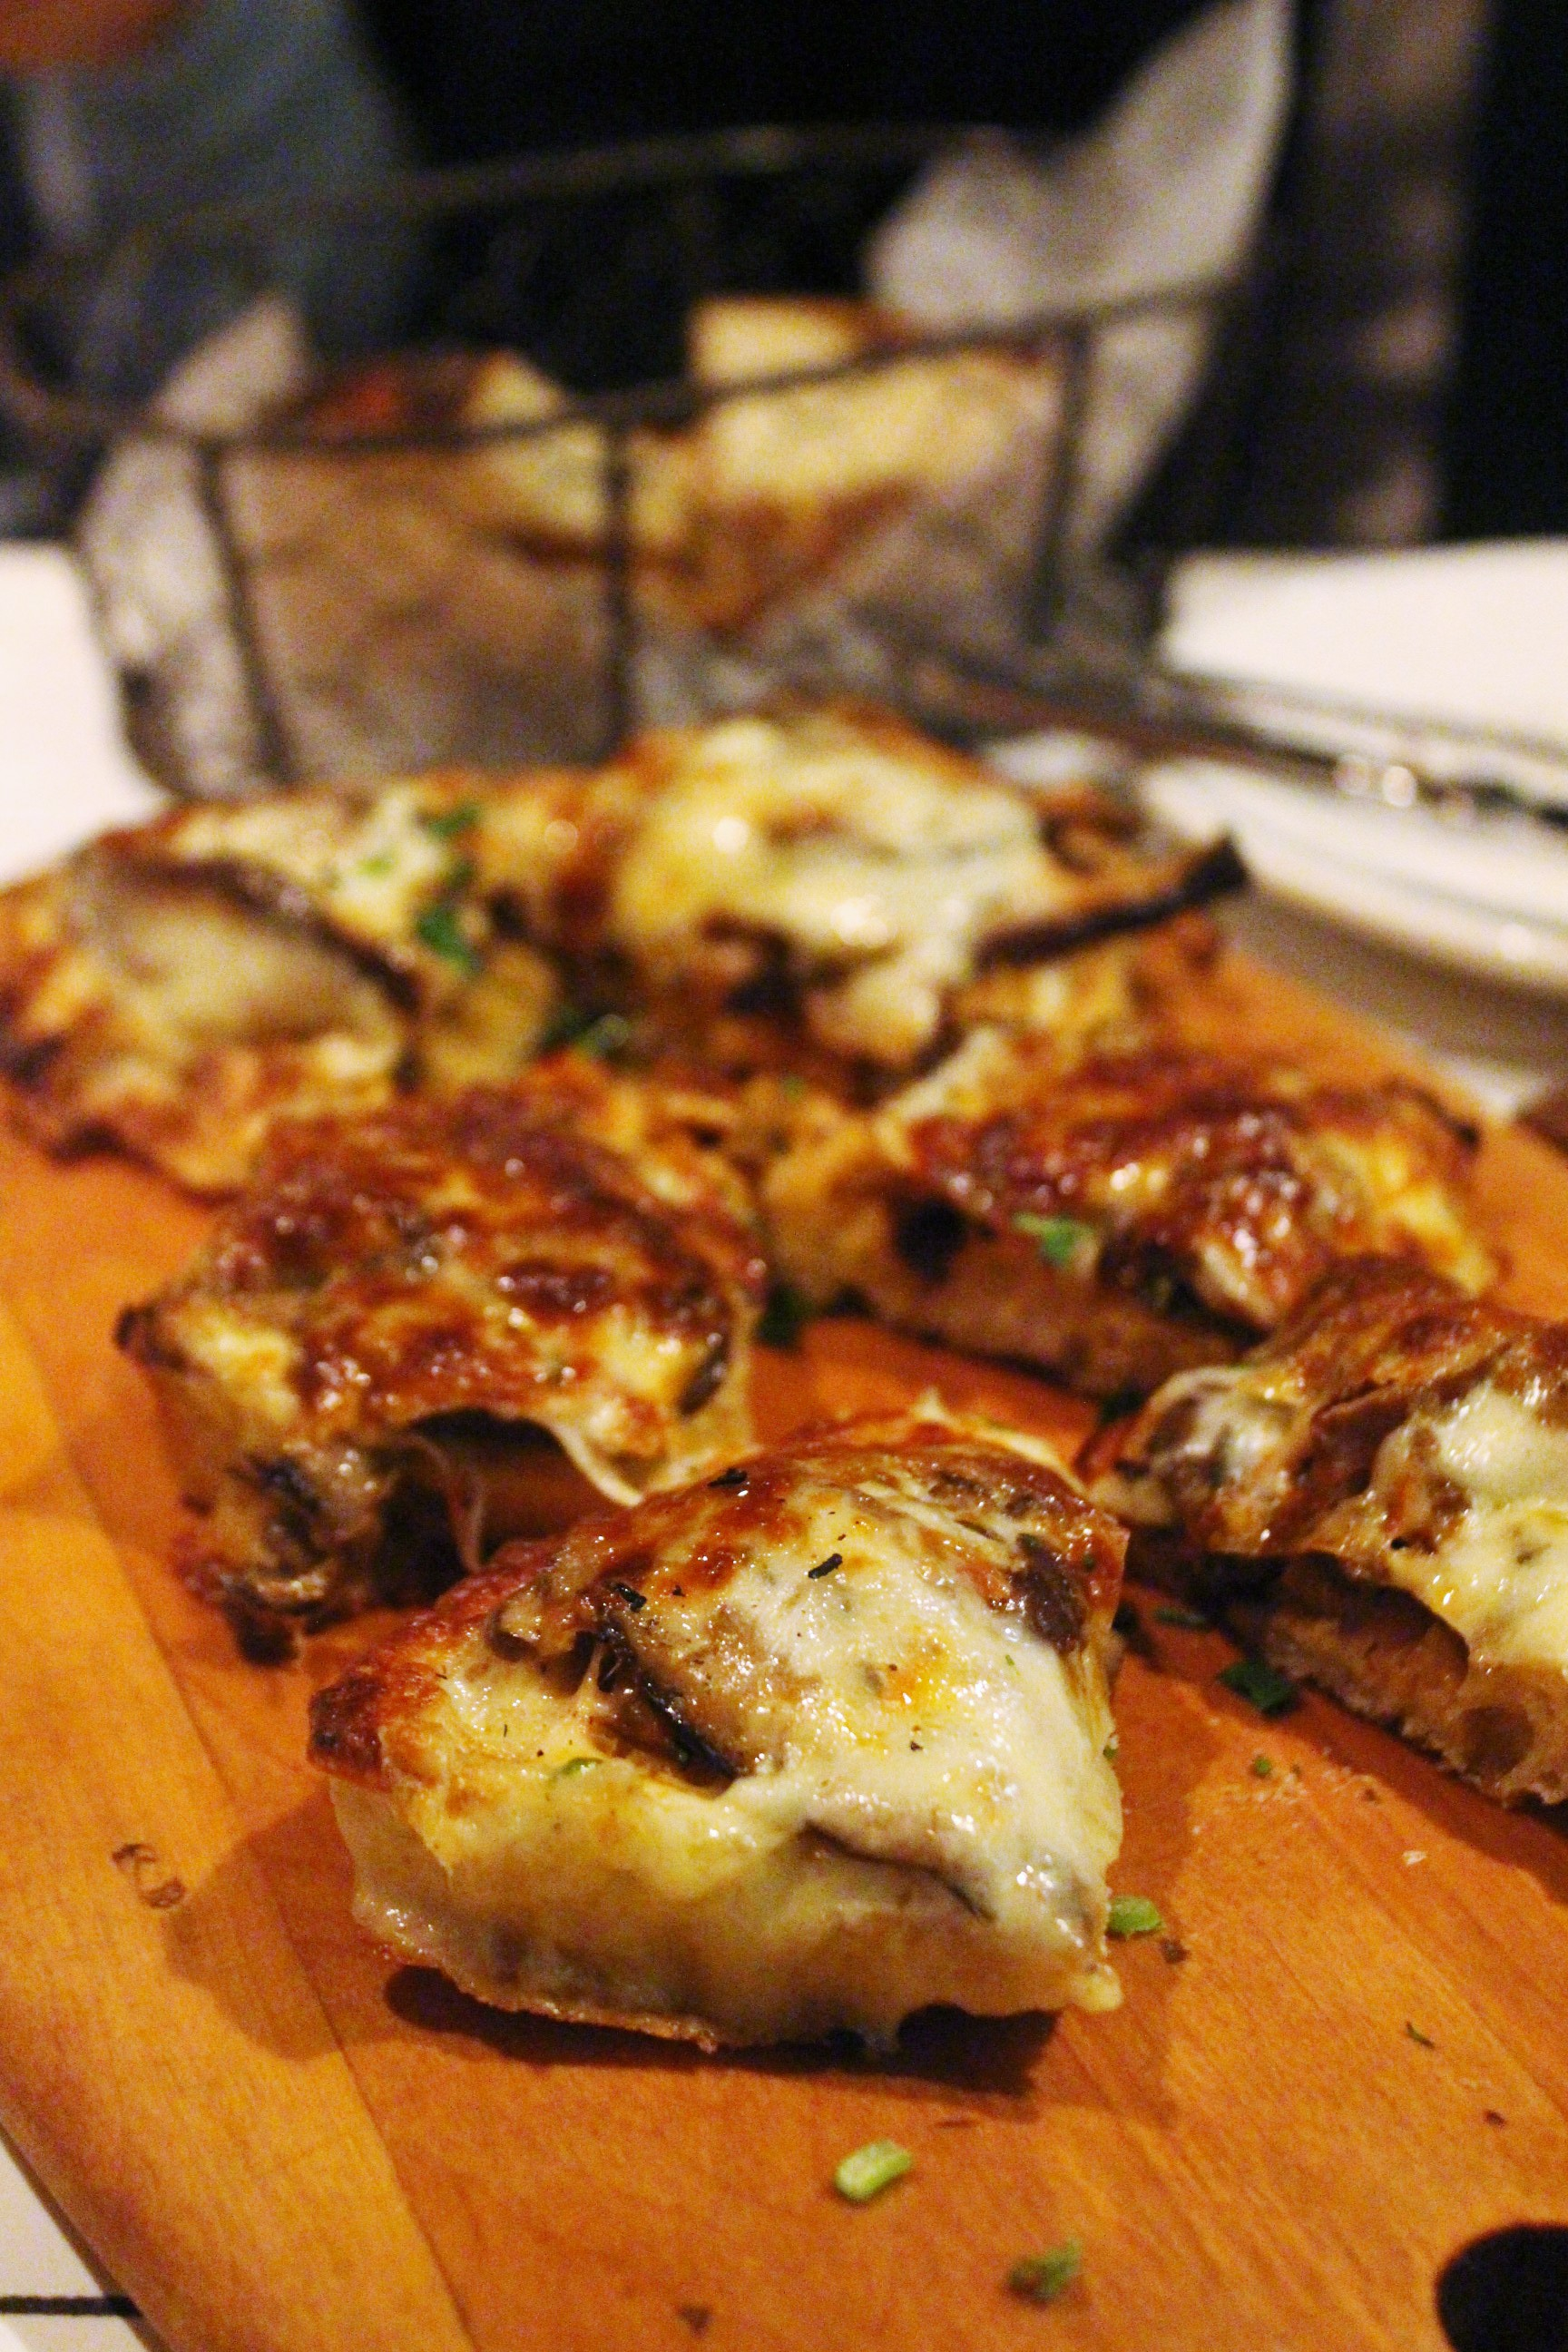 Bruschetta Funghi e Montasio: Mushroom Bruschetta with Montasio Cheese at Briciola